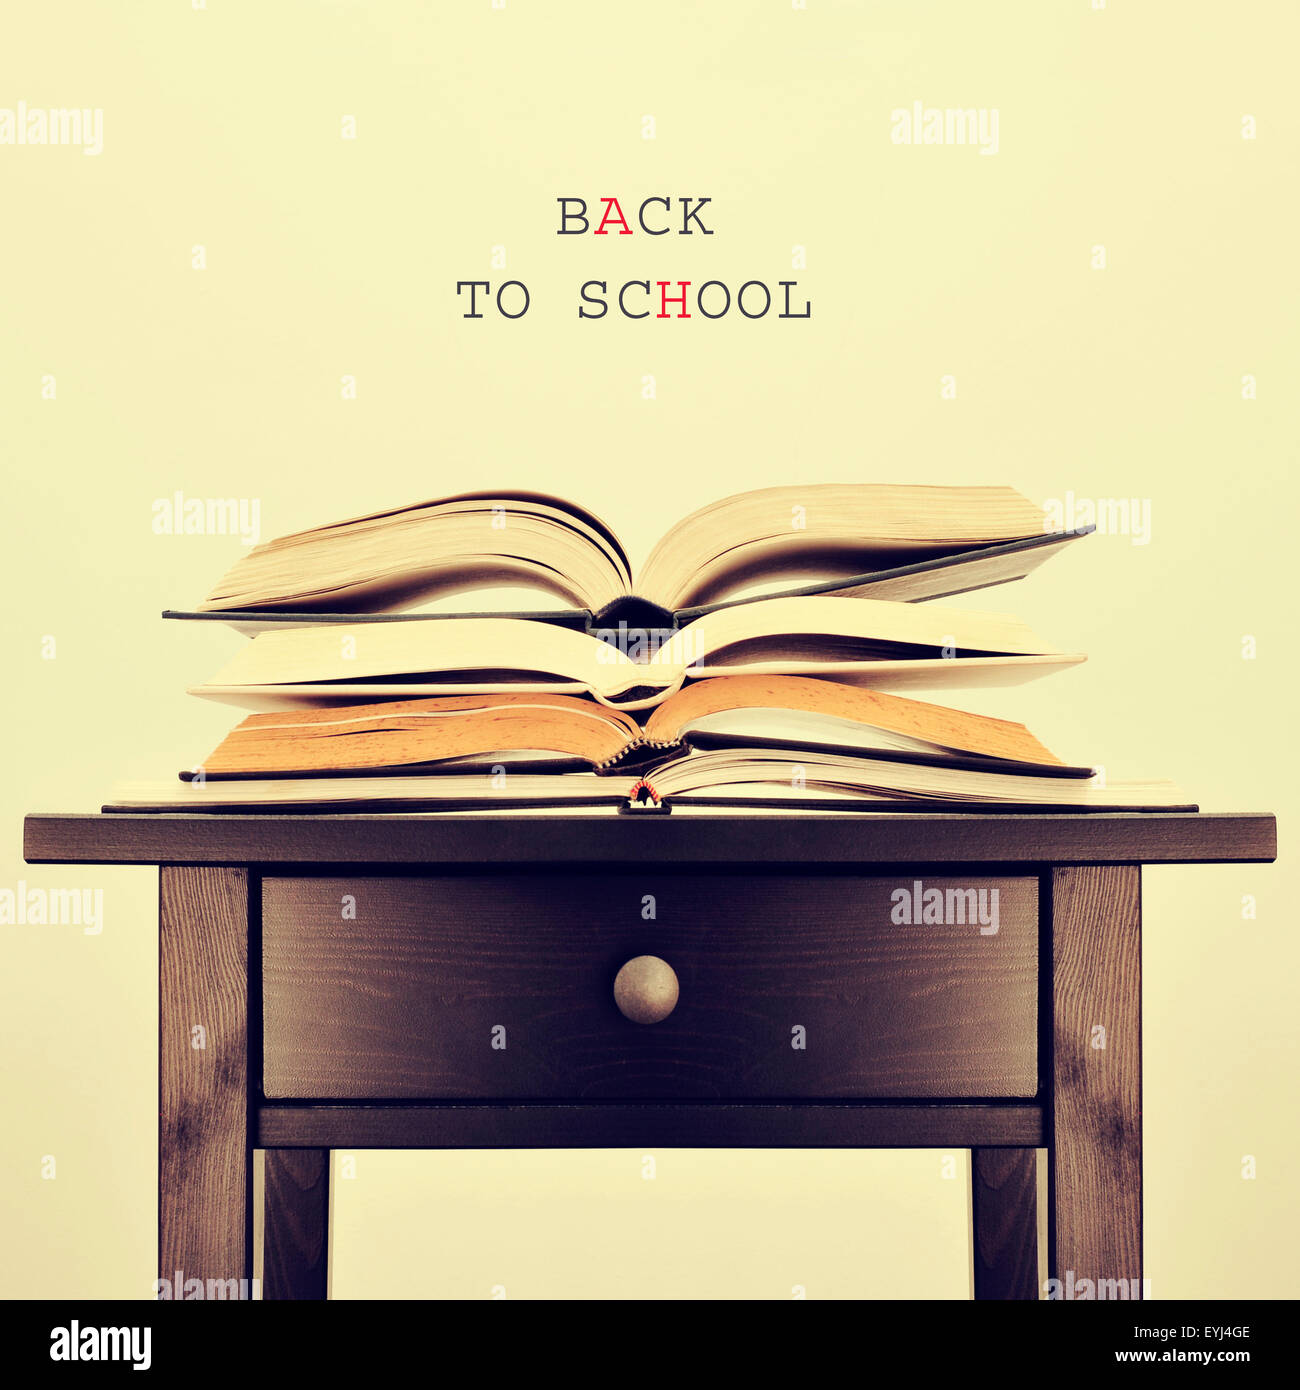 some open books on a table and the sentence back to school on a beige background, with a retro effect - Stock Image